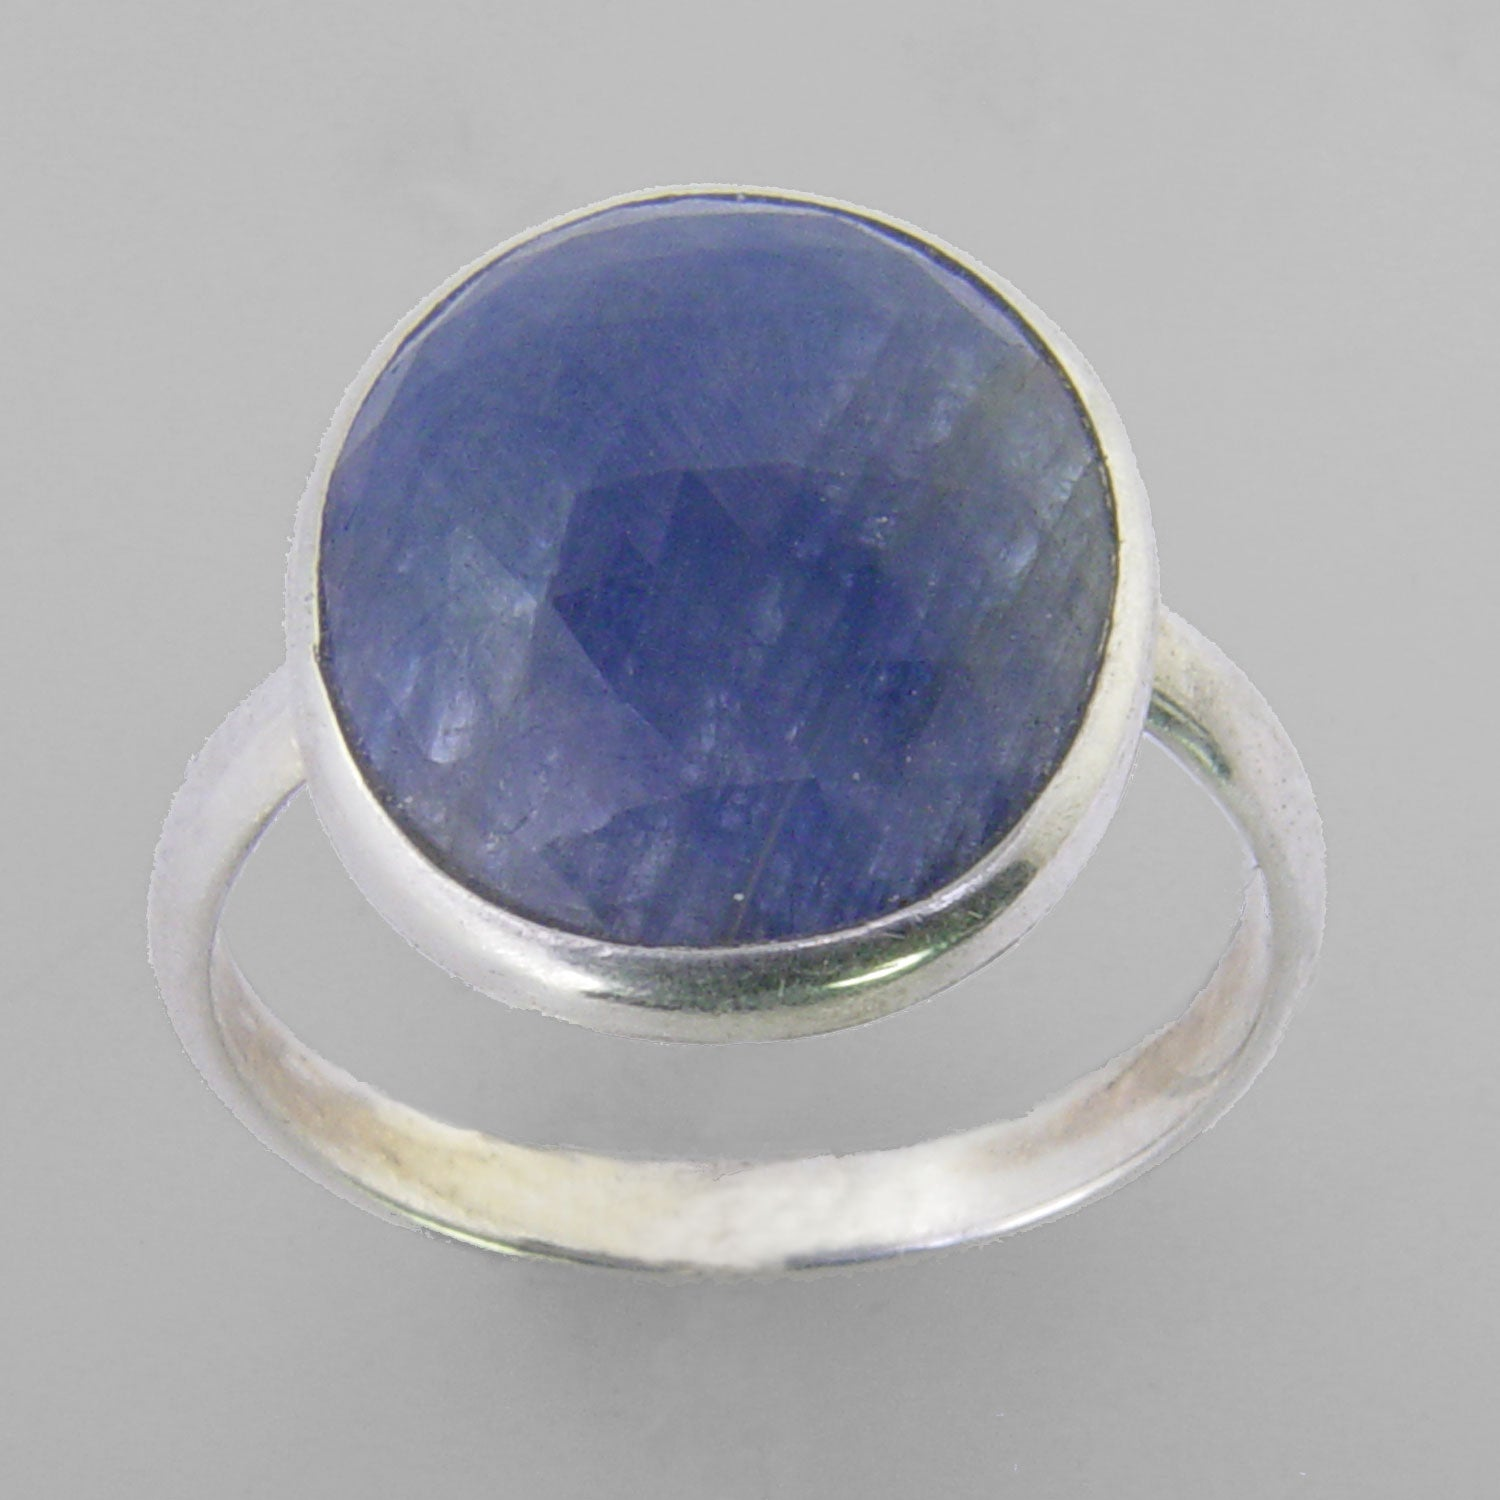 Blue Sapphire 6 ct Faceted Oval Cab Sterling Silver Ring, Size 7.75